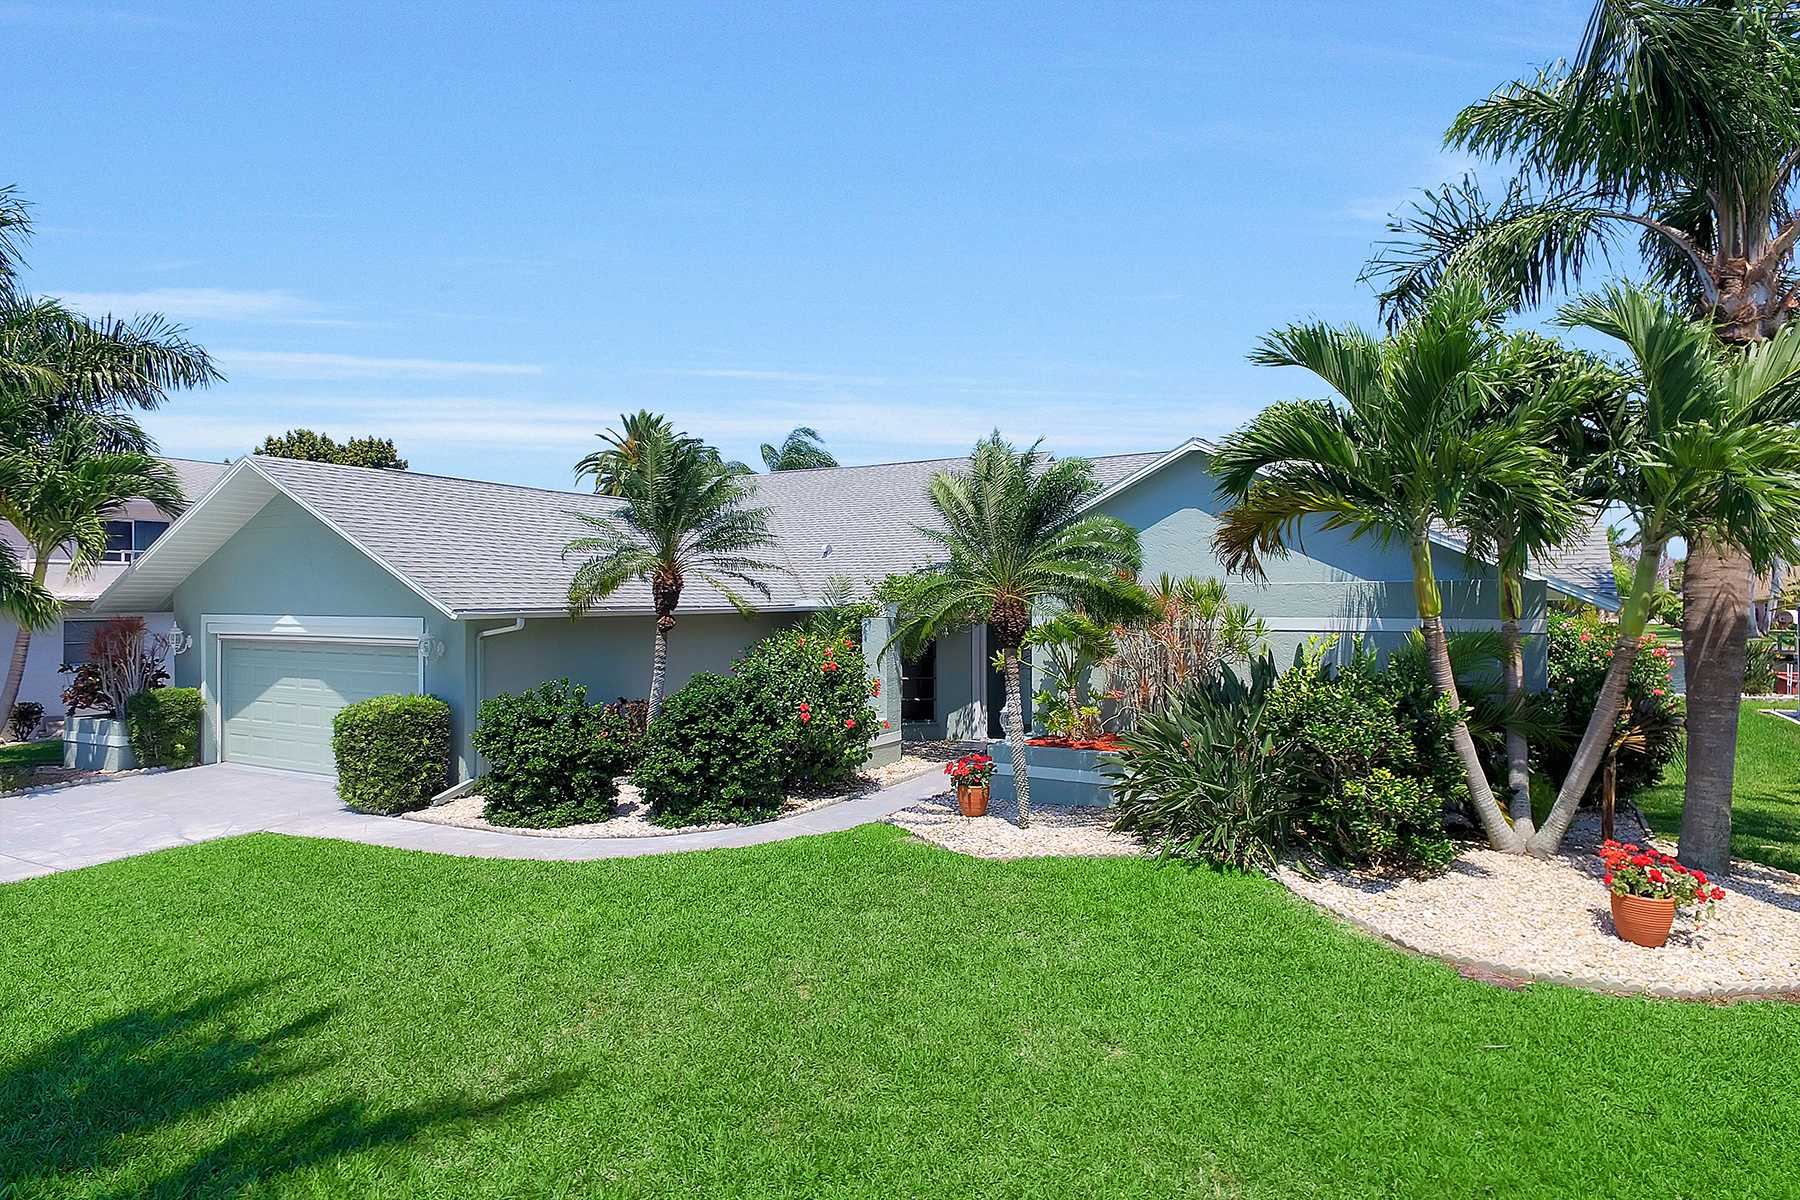 Single Family Home for Sale at CAPE CORAL 1927 SE 35th St Cape Coral, Florida 33904 United States